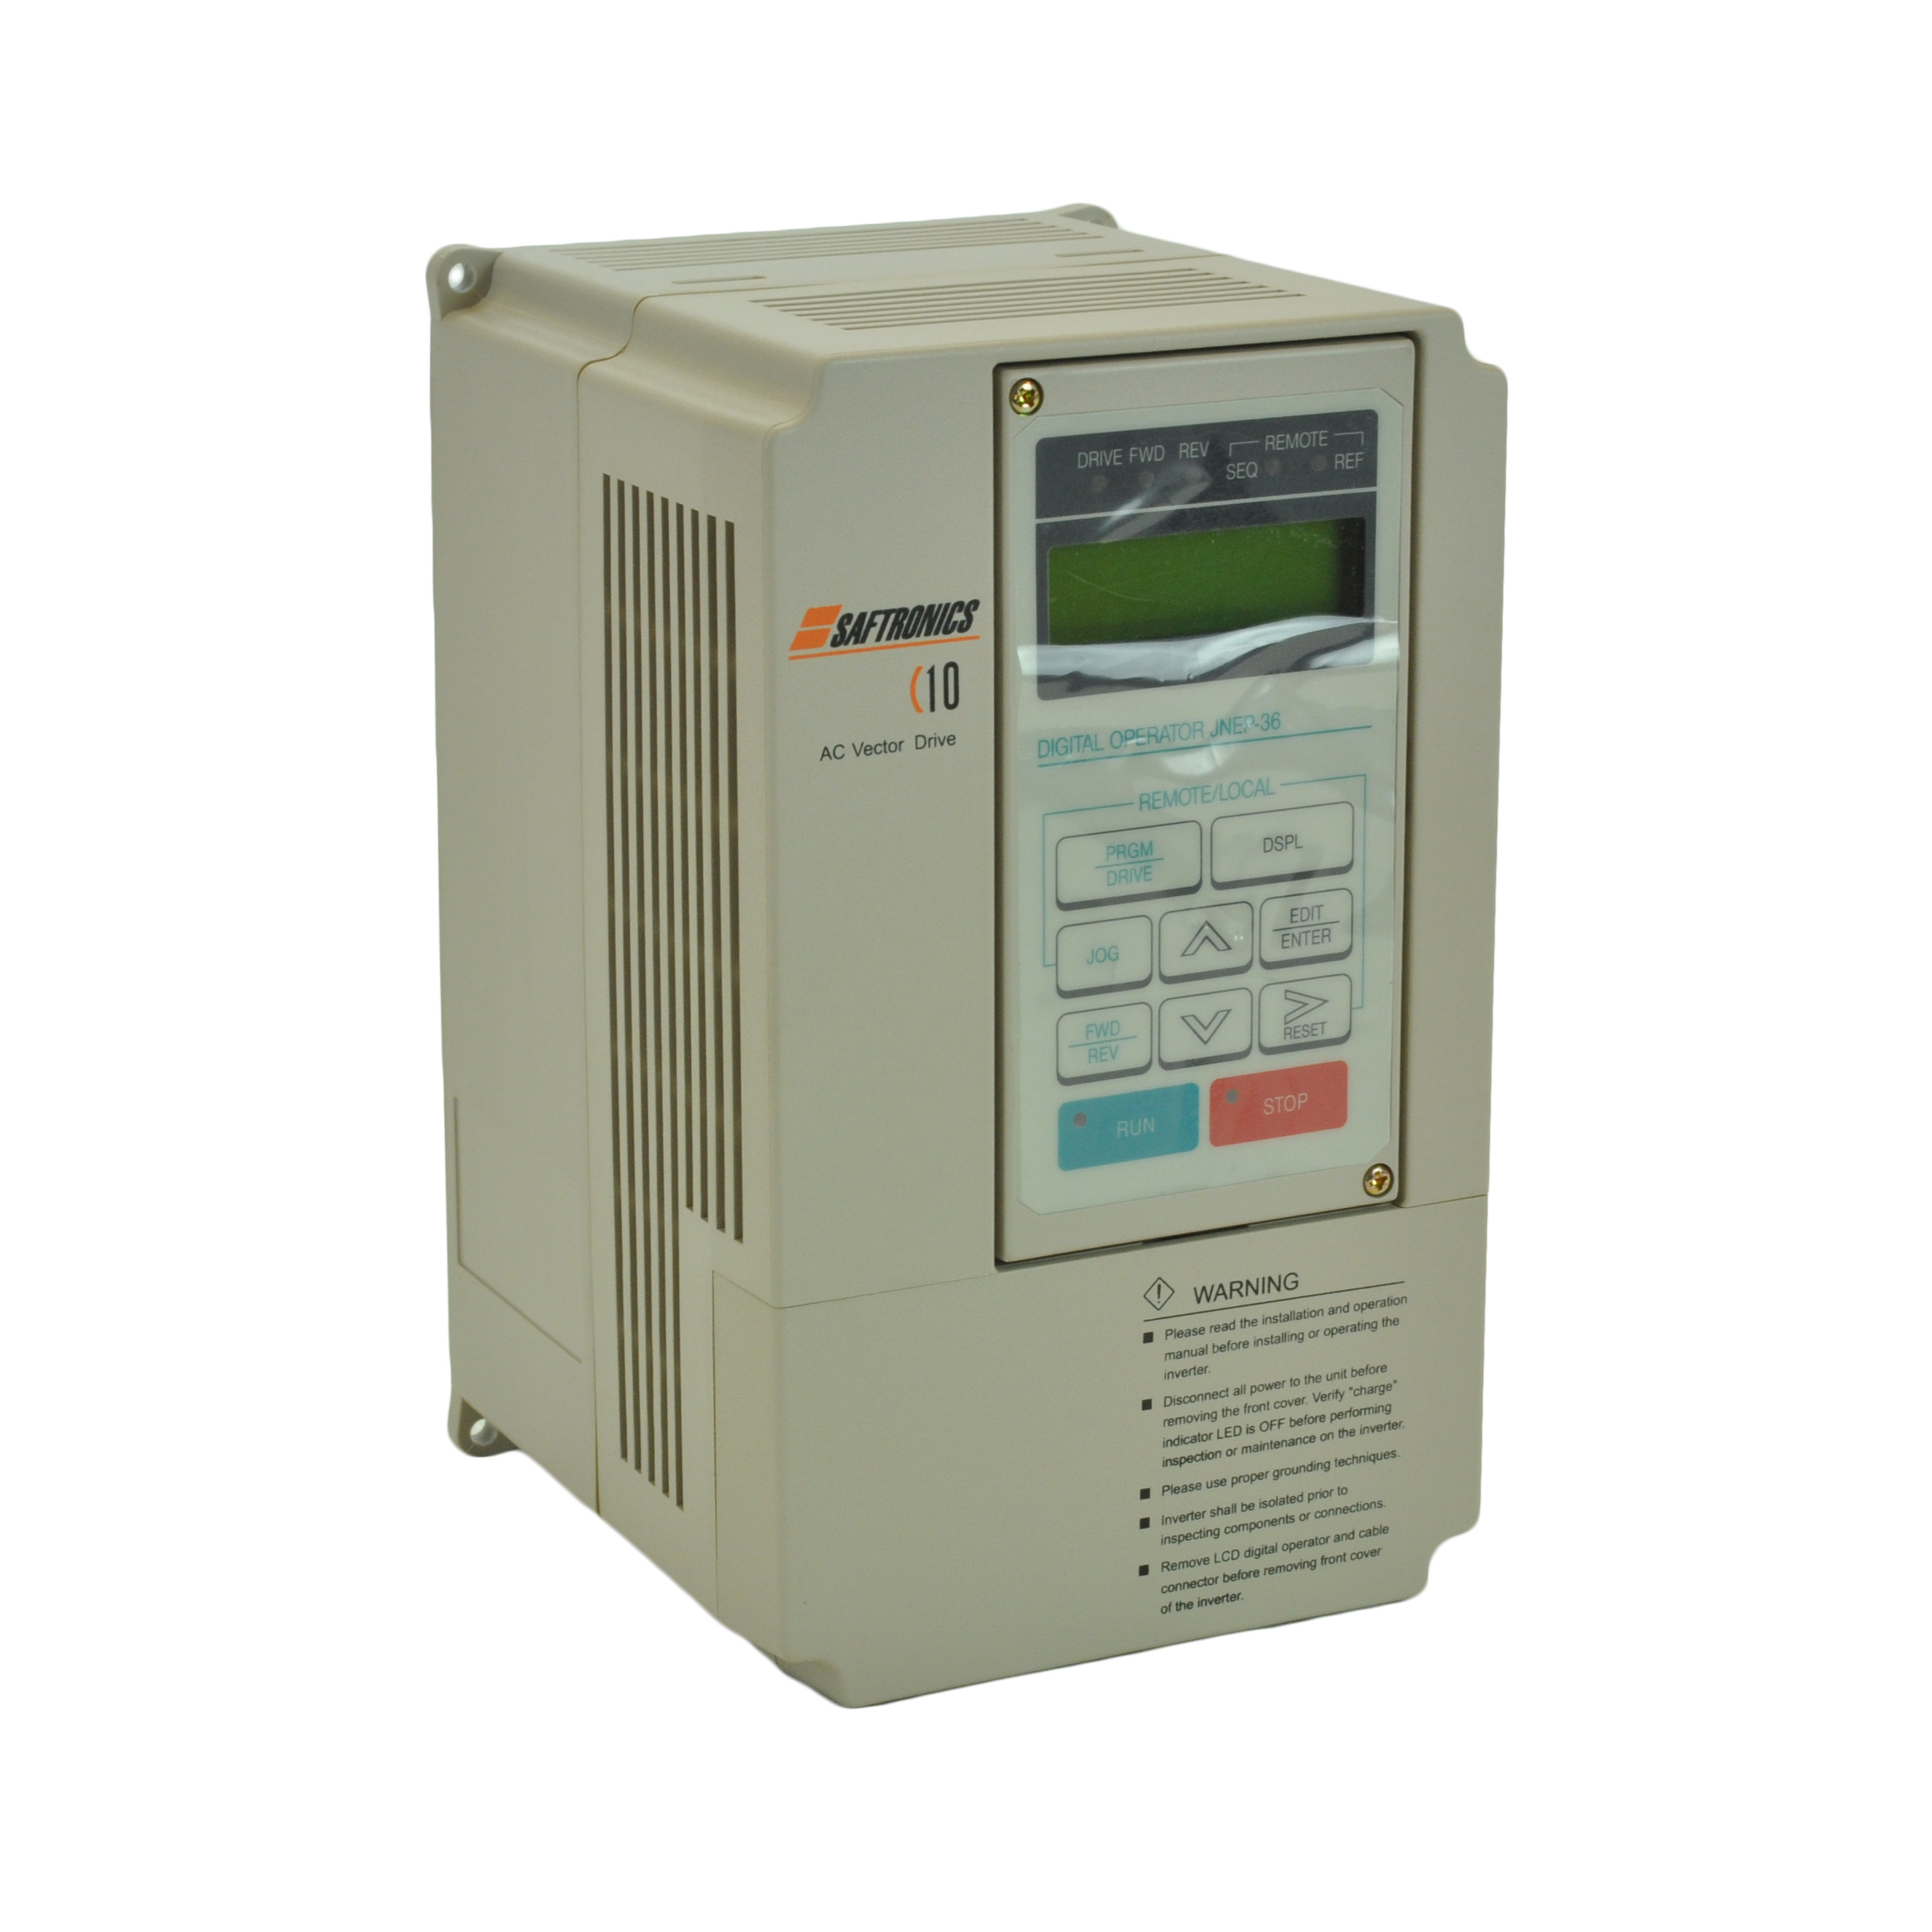 5hp 7 5hp 230v saftronics vfd inverter ac drive c102005 1 for Vfd for 5hp motor